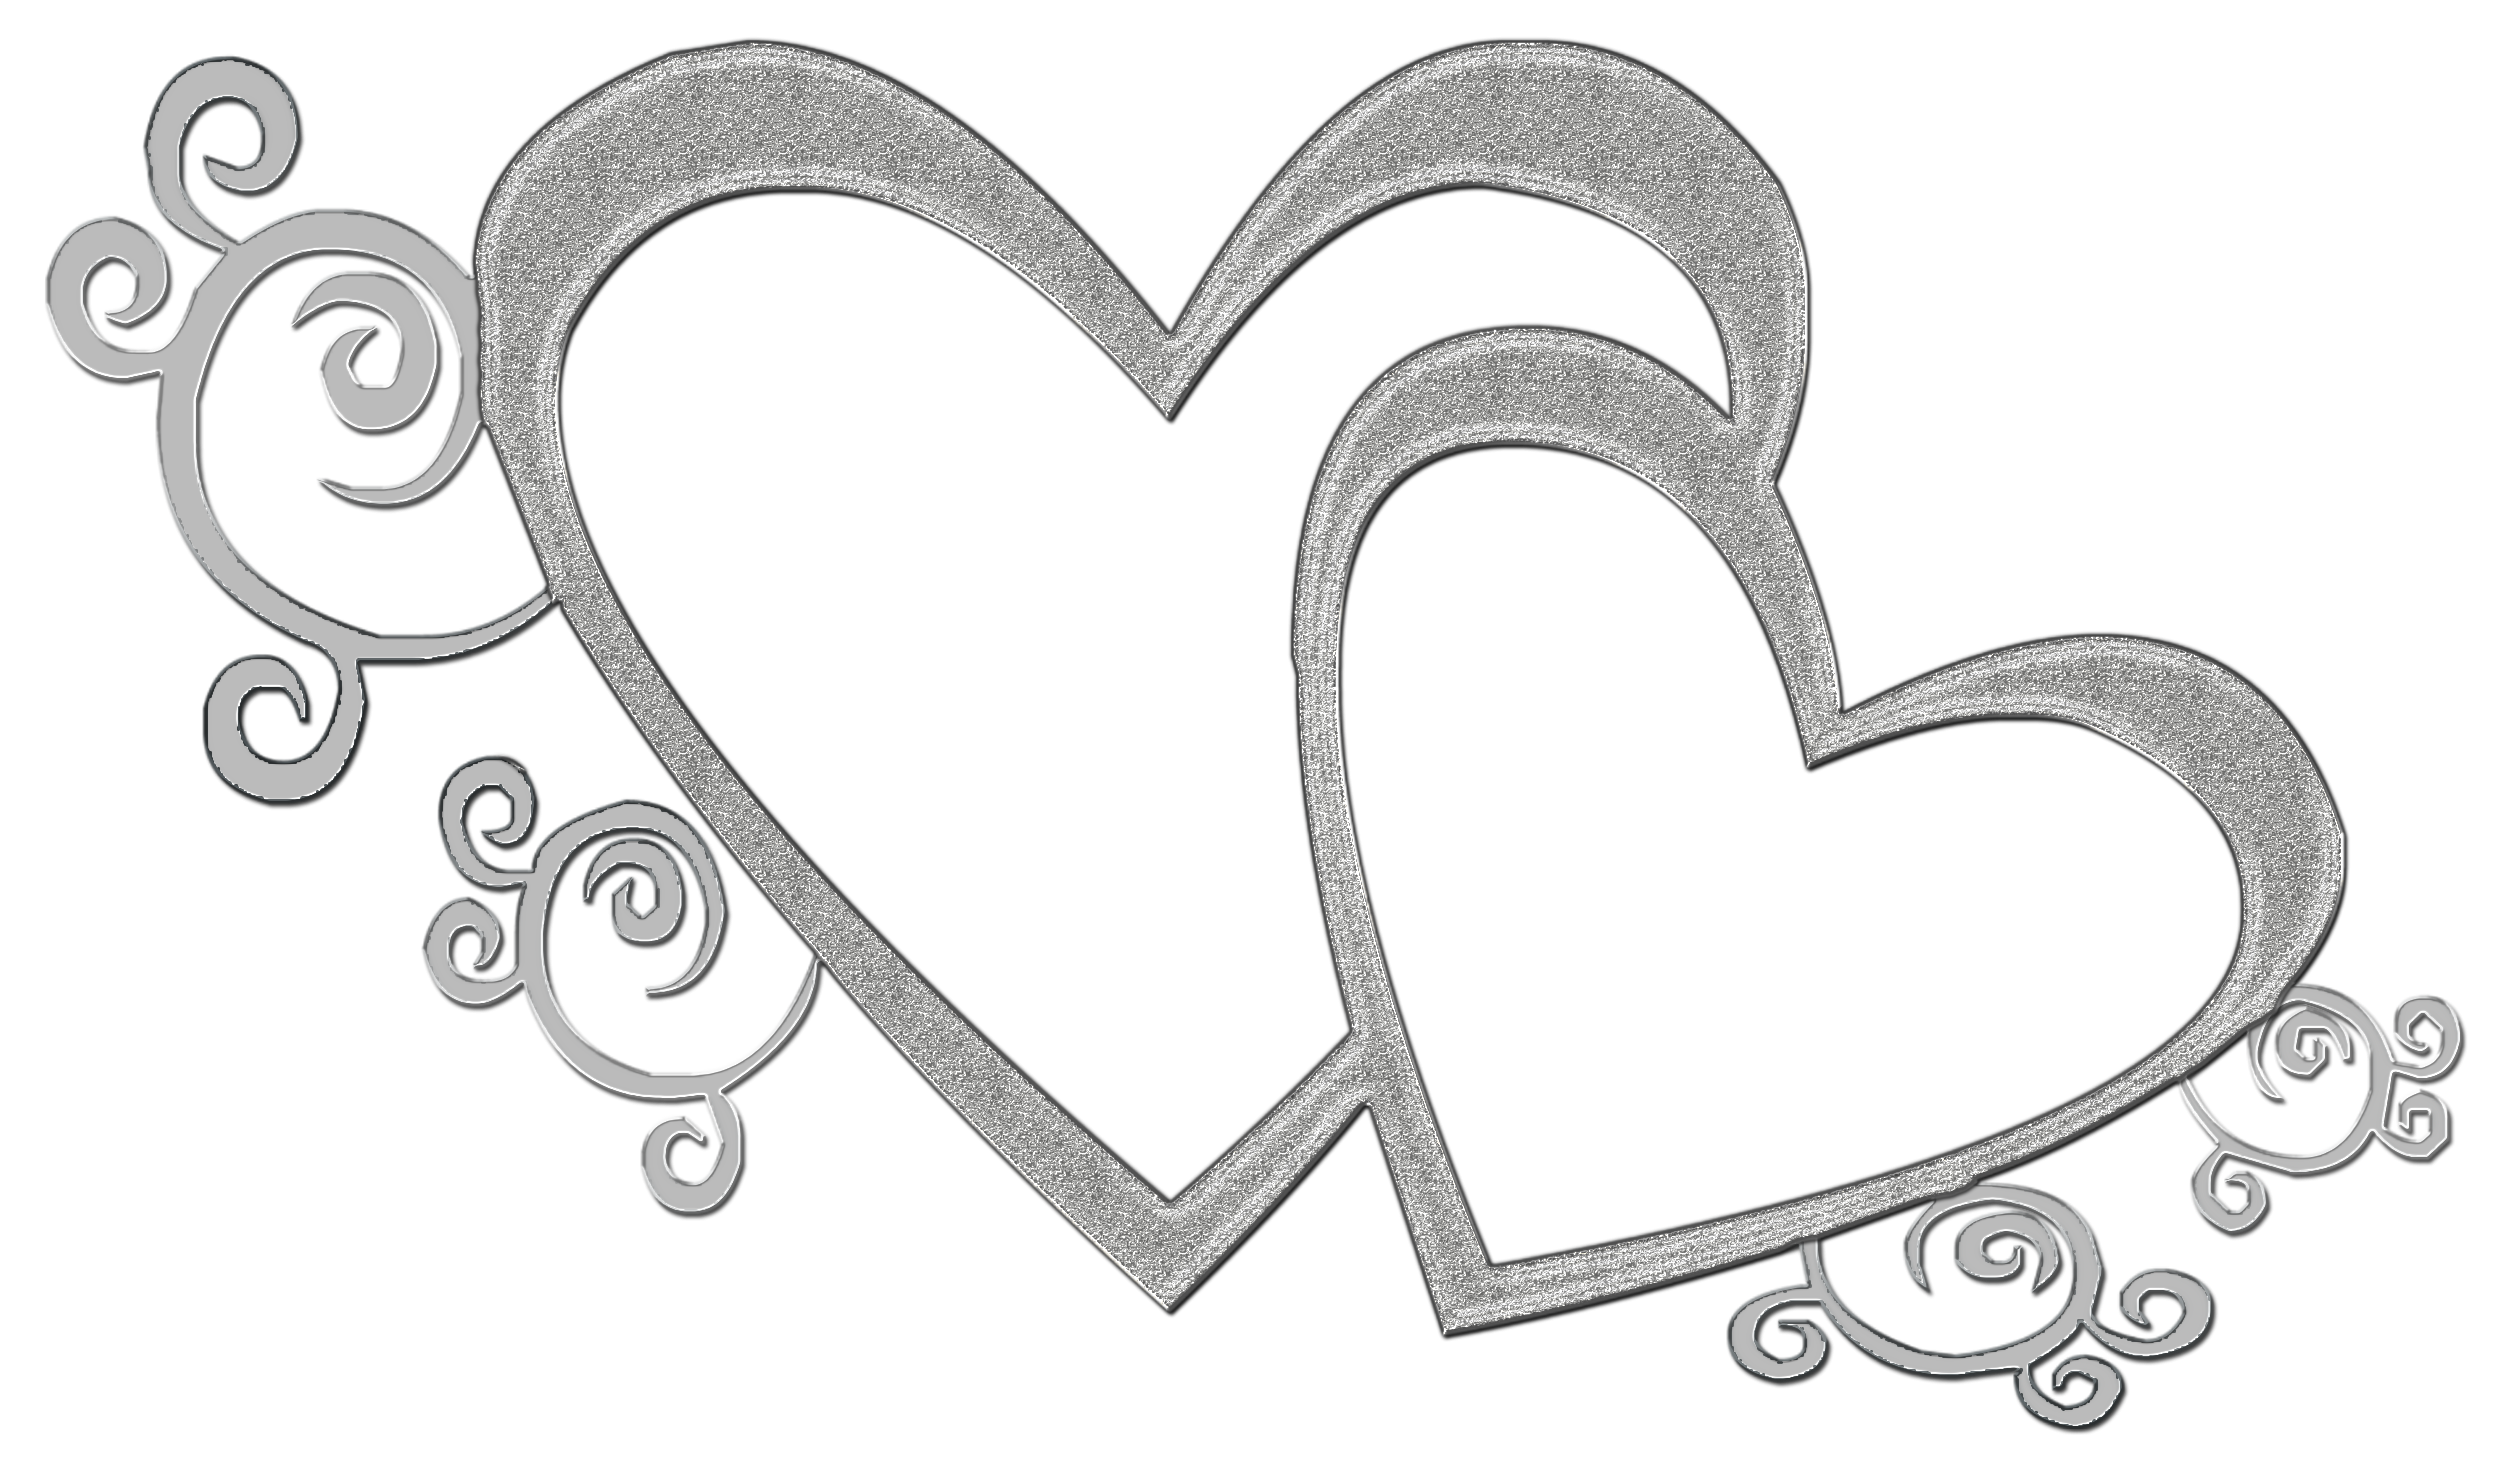 Double row banner clipart black and white banner royalty free stock Free Hearts Clip Art, Download Free Clip Art, Free Clip Art on ... banner royalty free stock